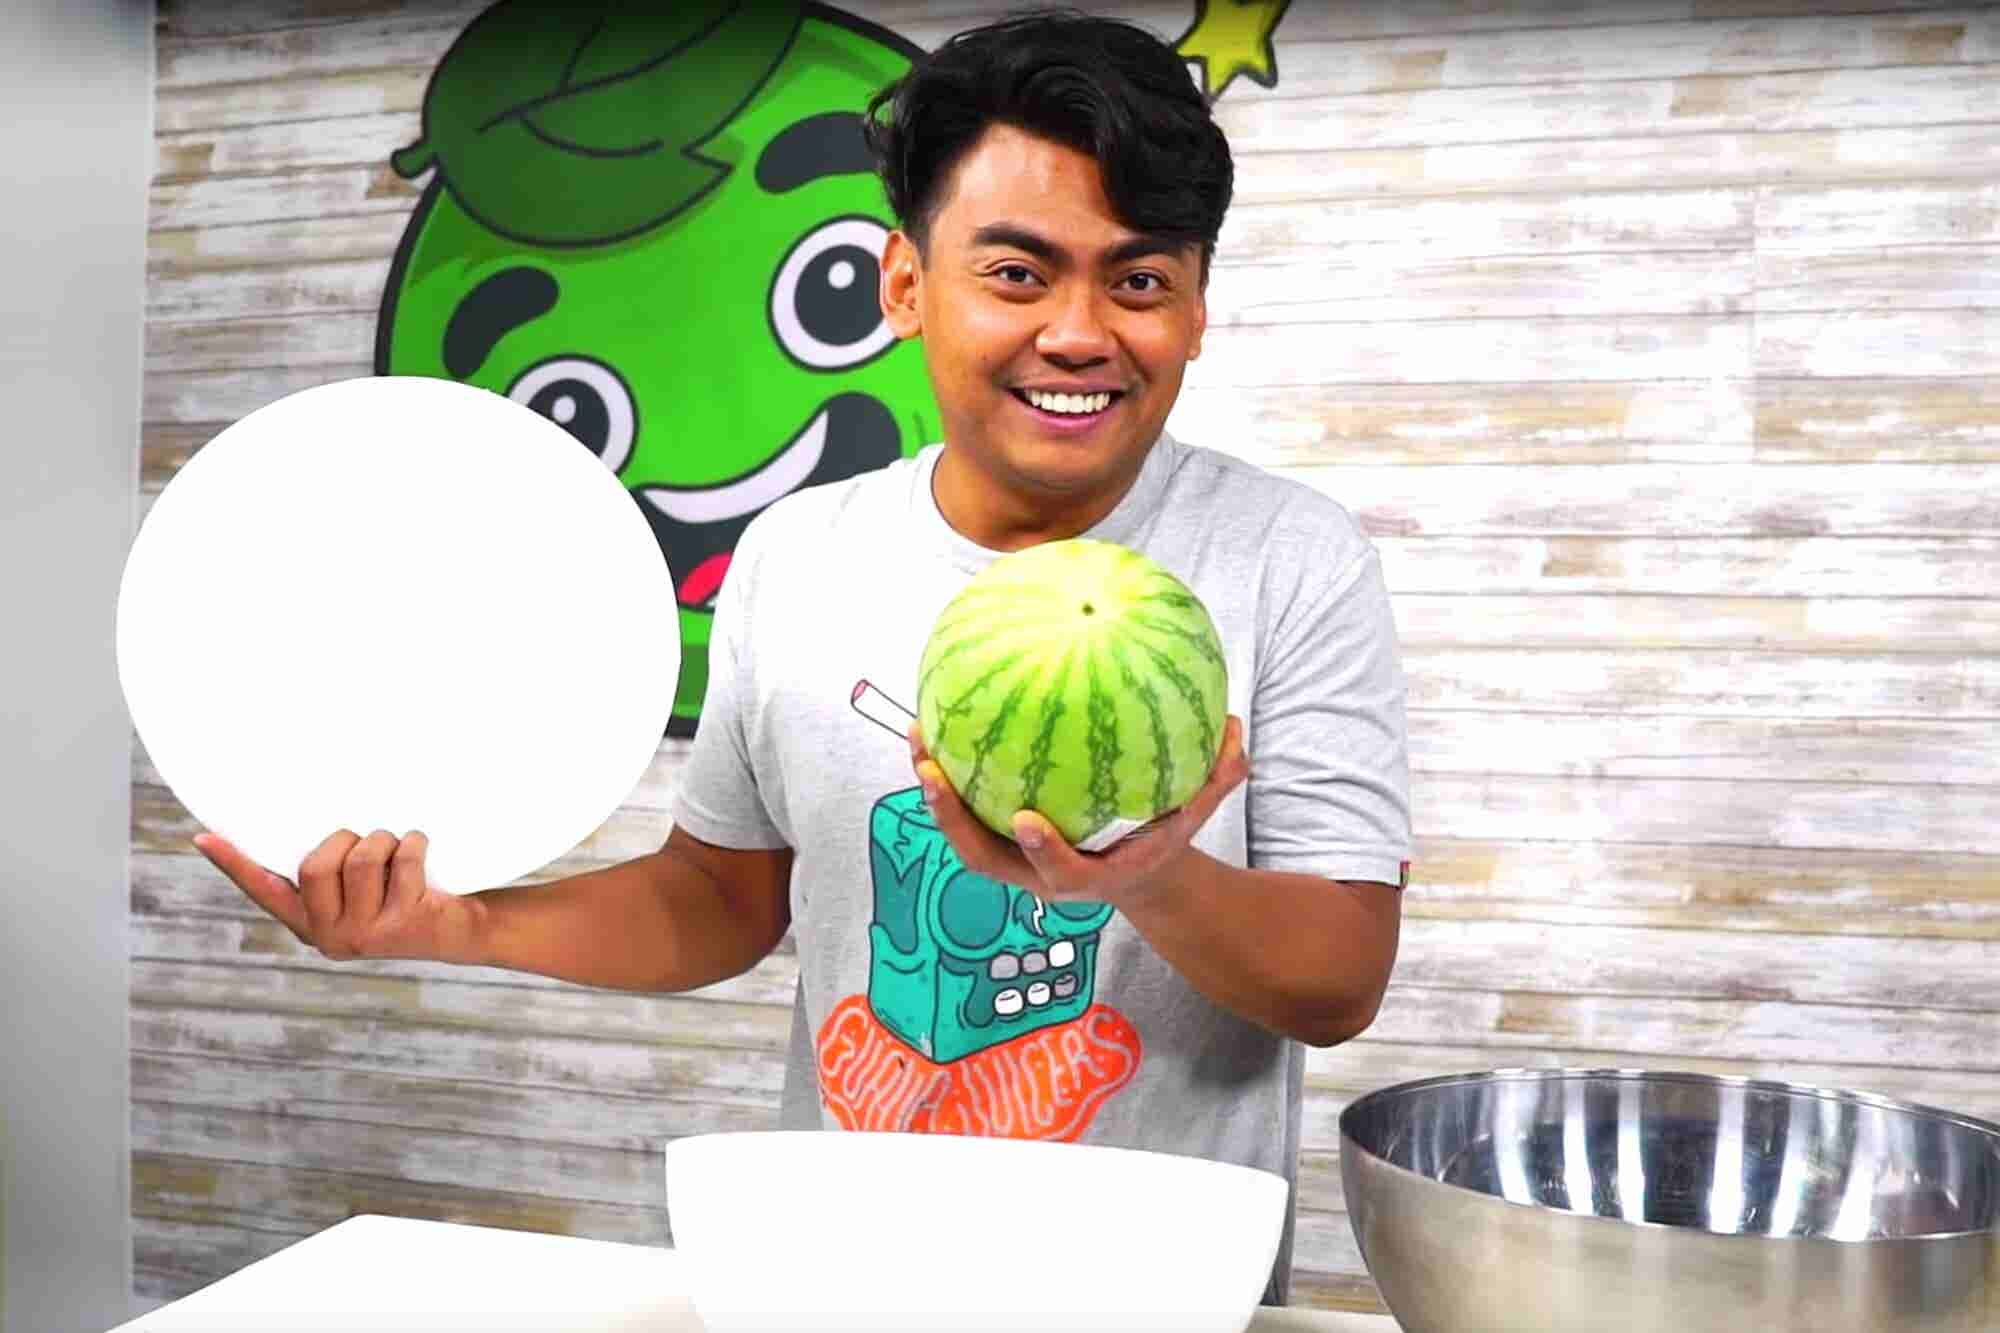 The 26-Year-Old Entrepreneur Behind the Popular Guava Juice YouTube Channel Reveals the Most Important Parts of a Video